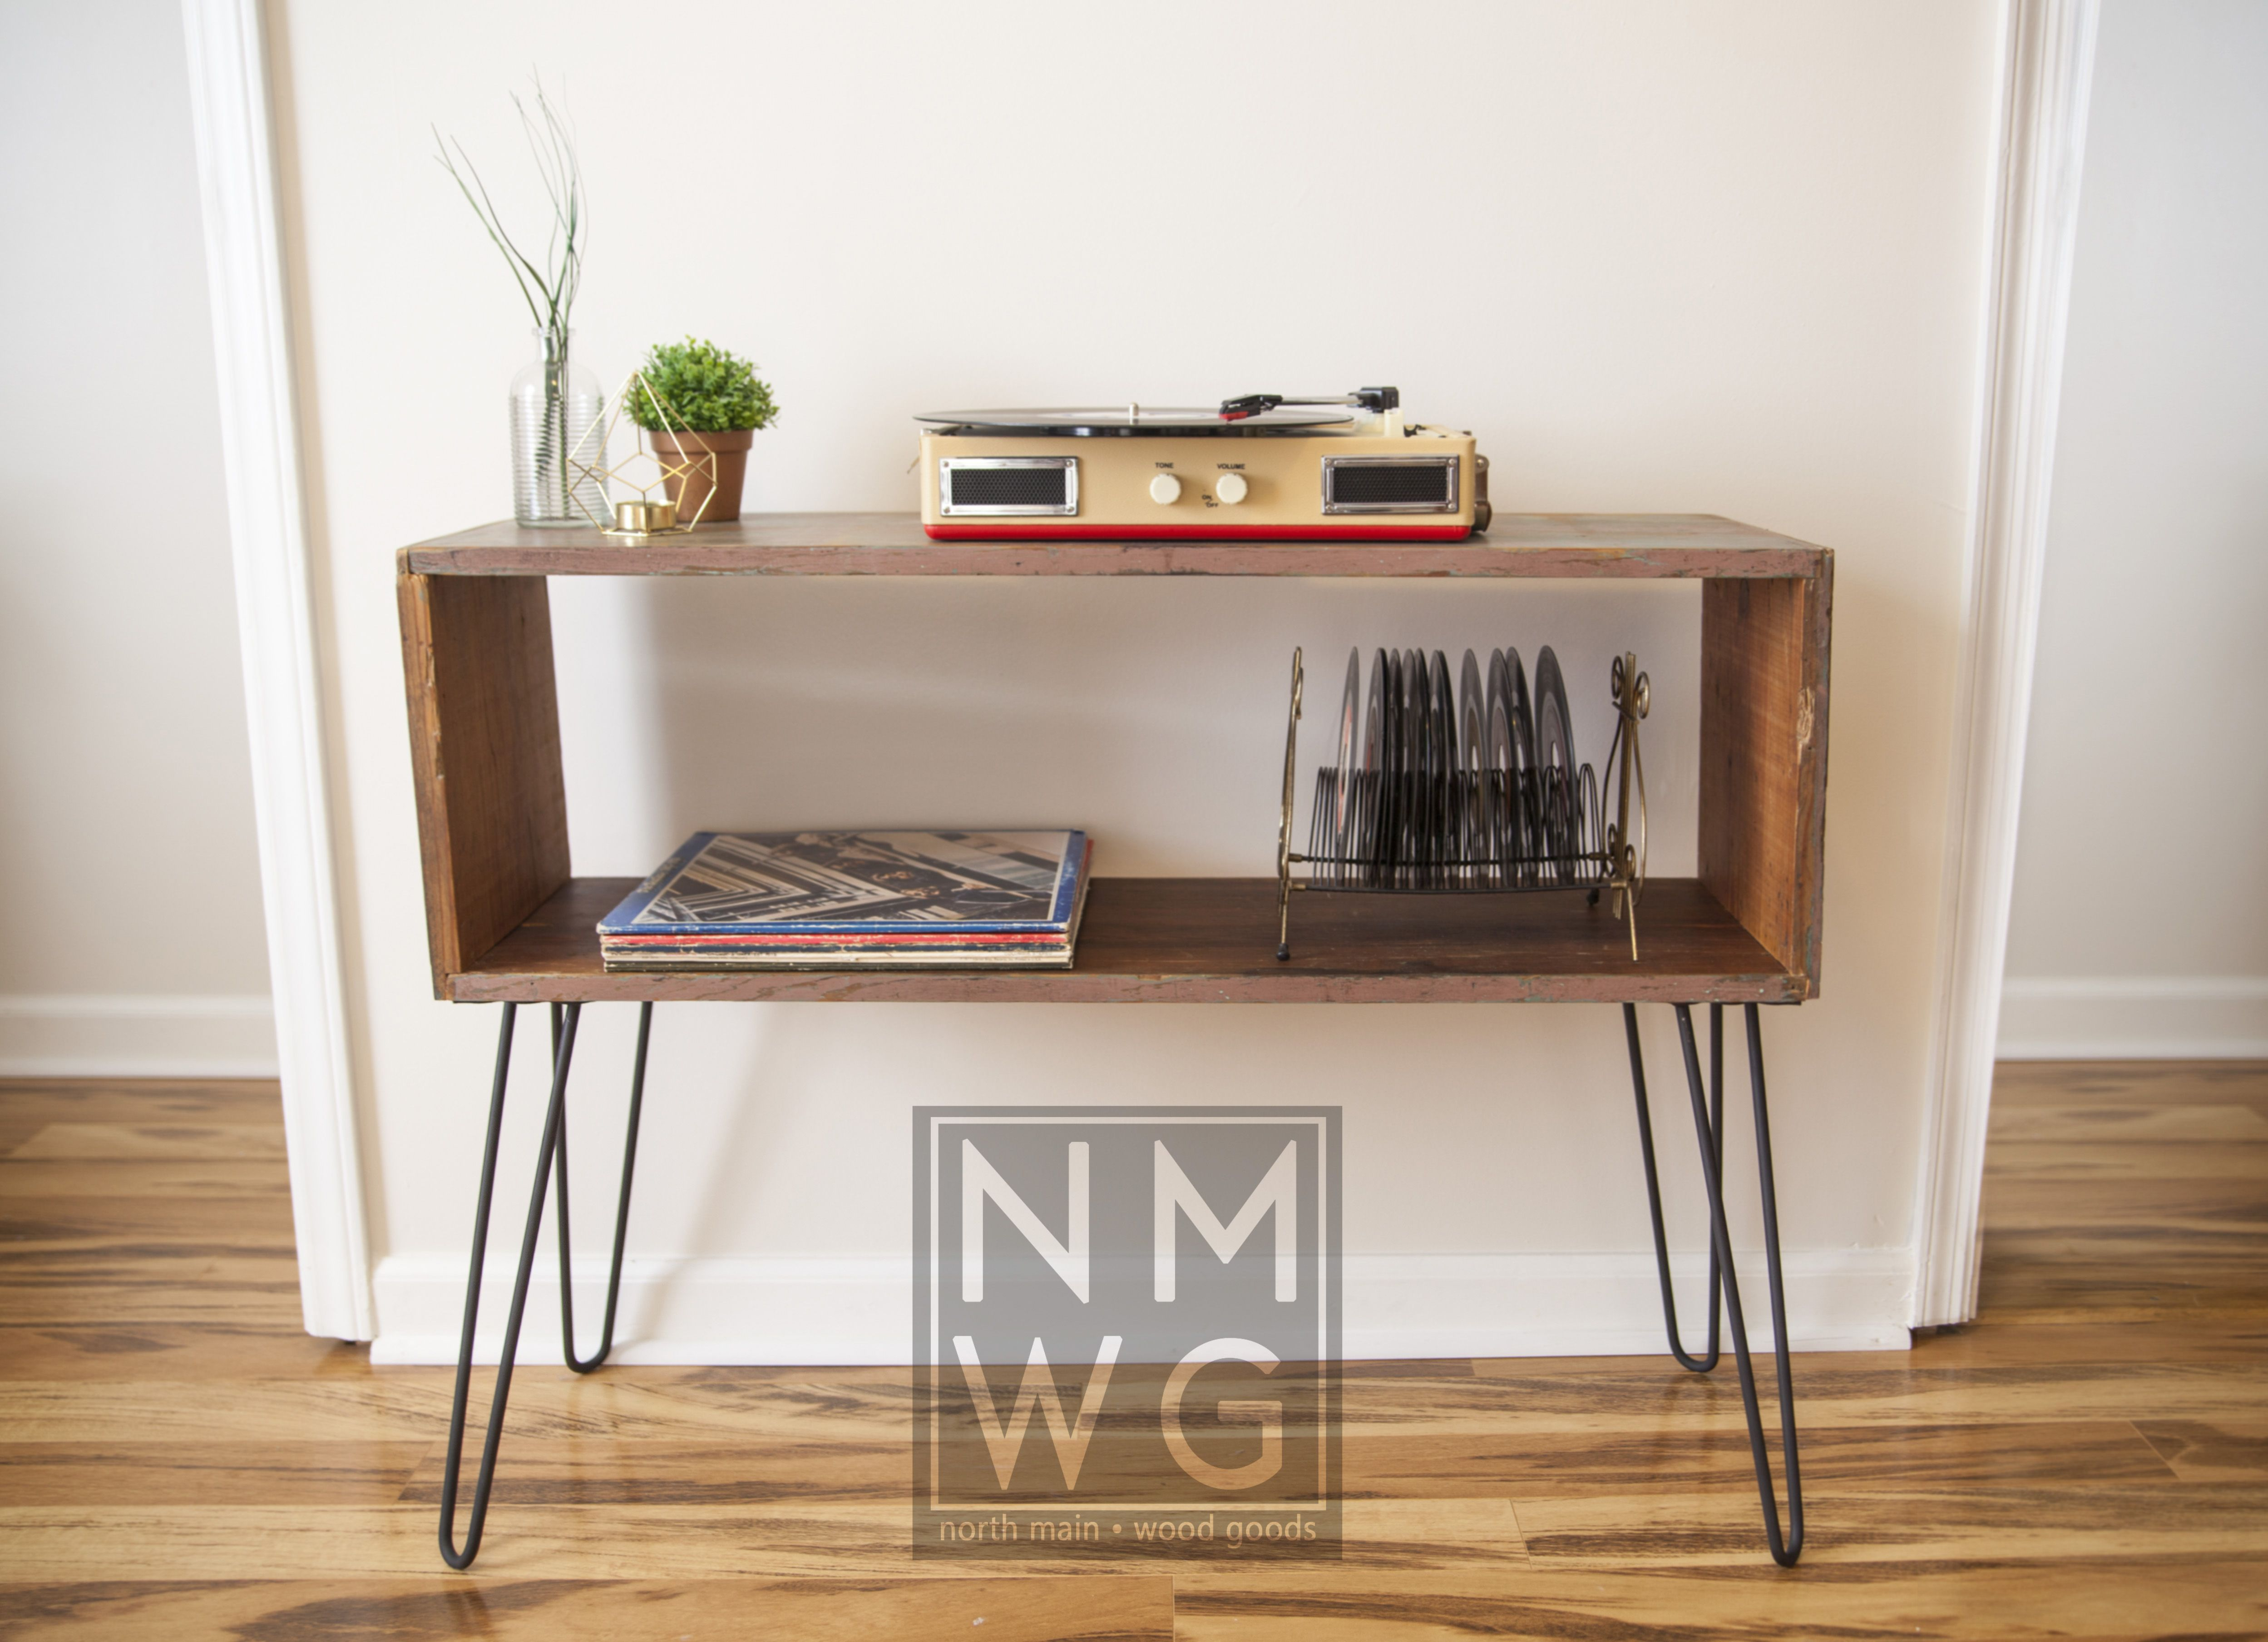 Console table with hairpin legs perfect for record players and console table with hairpin legs perfect for record players and storing records geotapseo Images